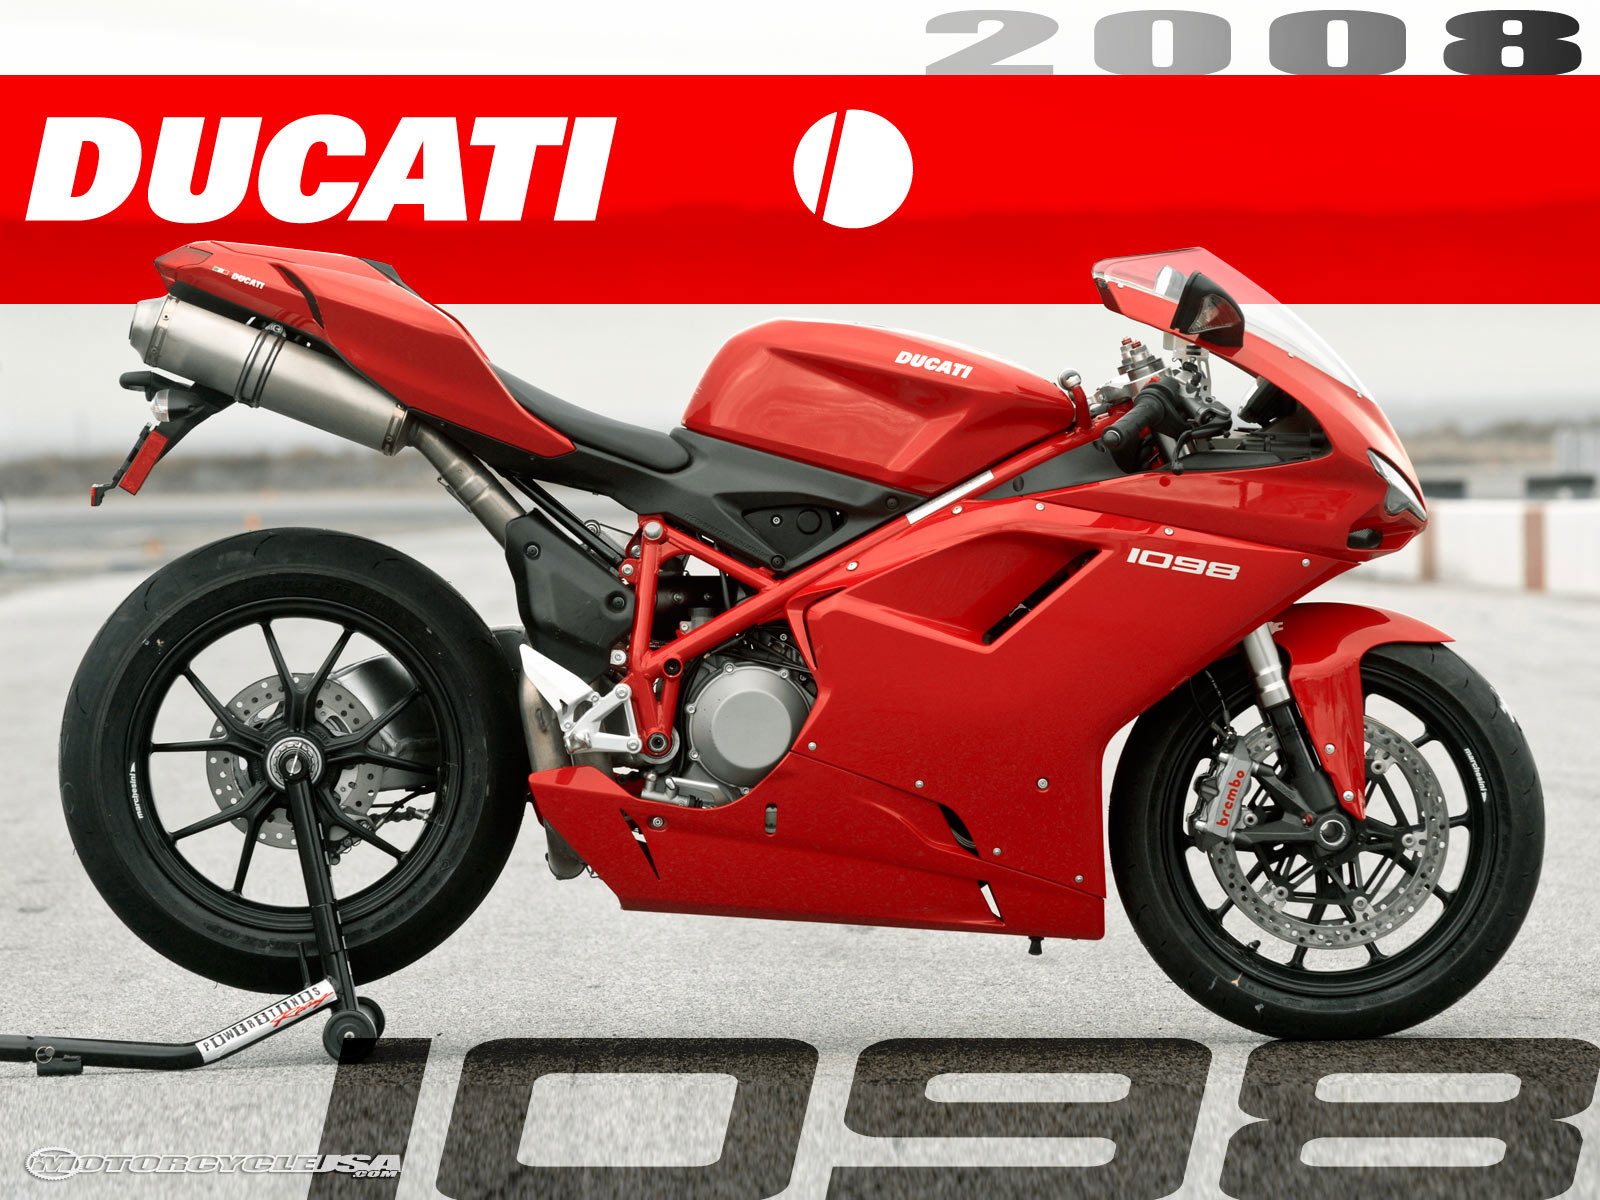 2008 Ducati Superbike 1098 S Pics Specs And Information Wiring Diagram Images 79079